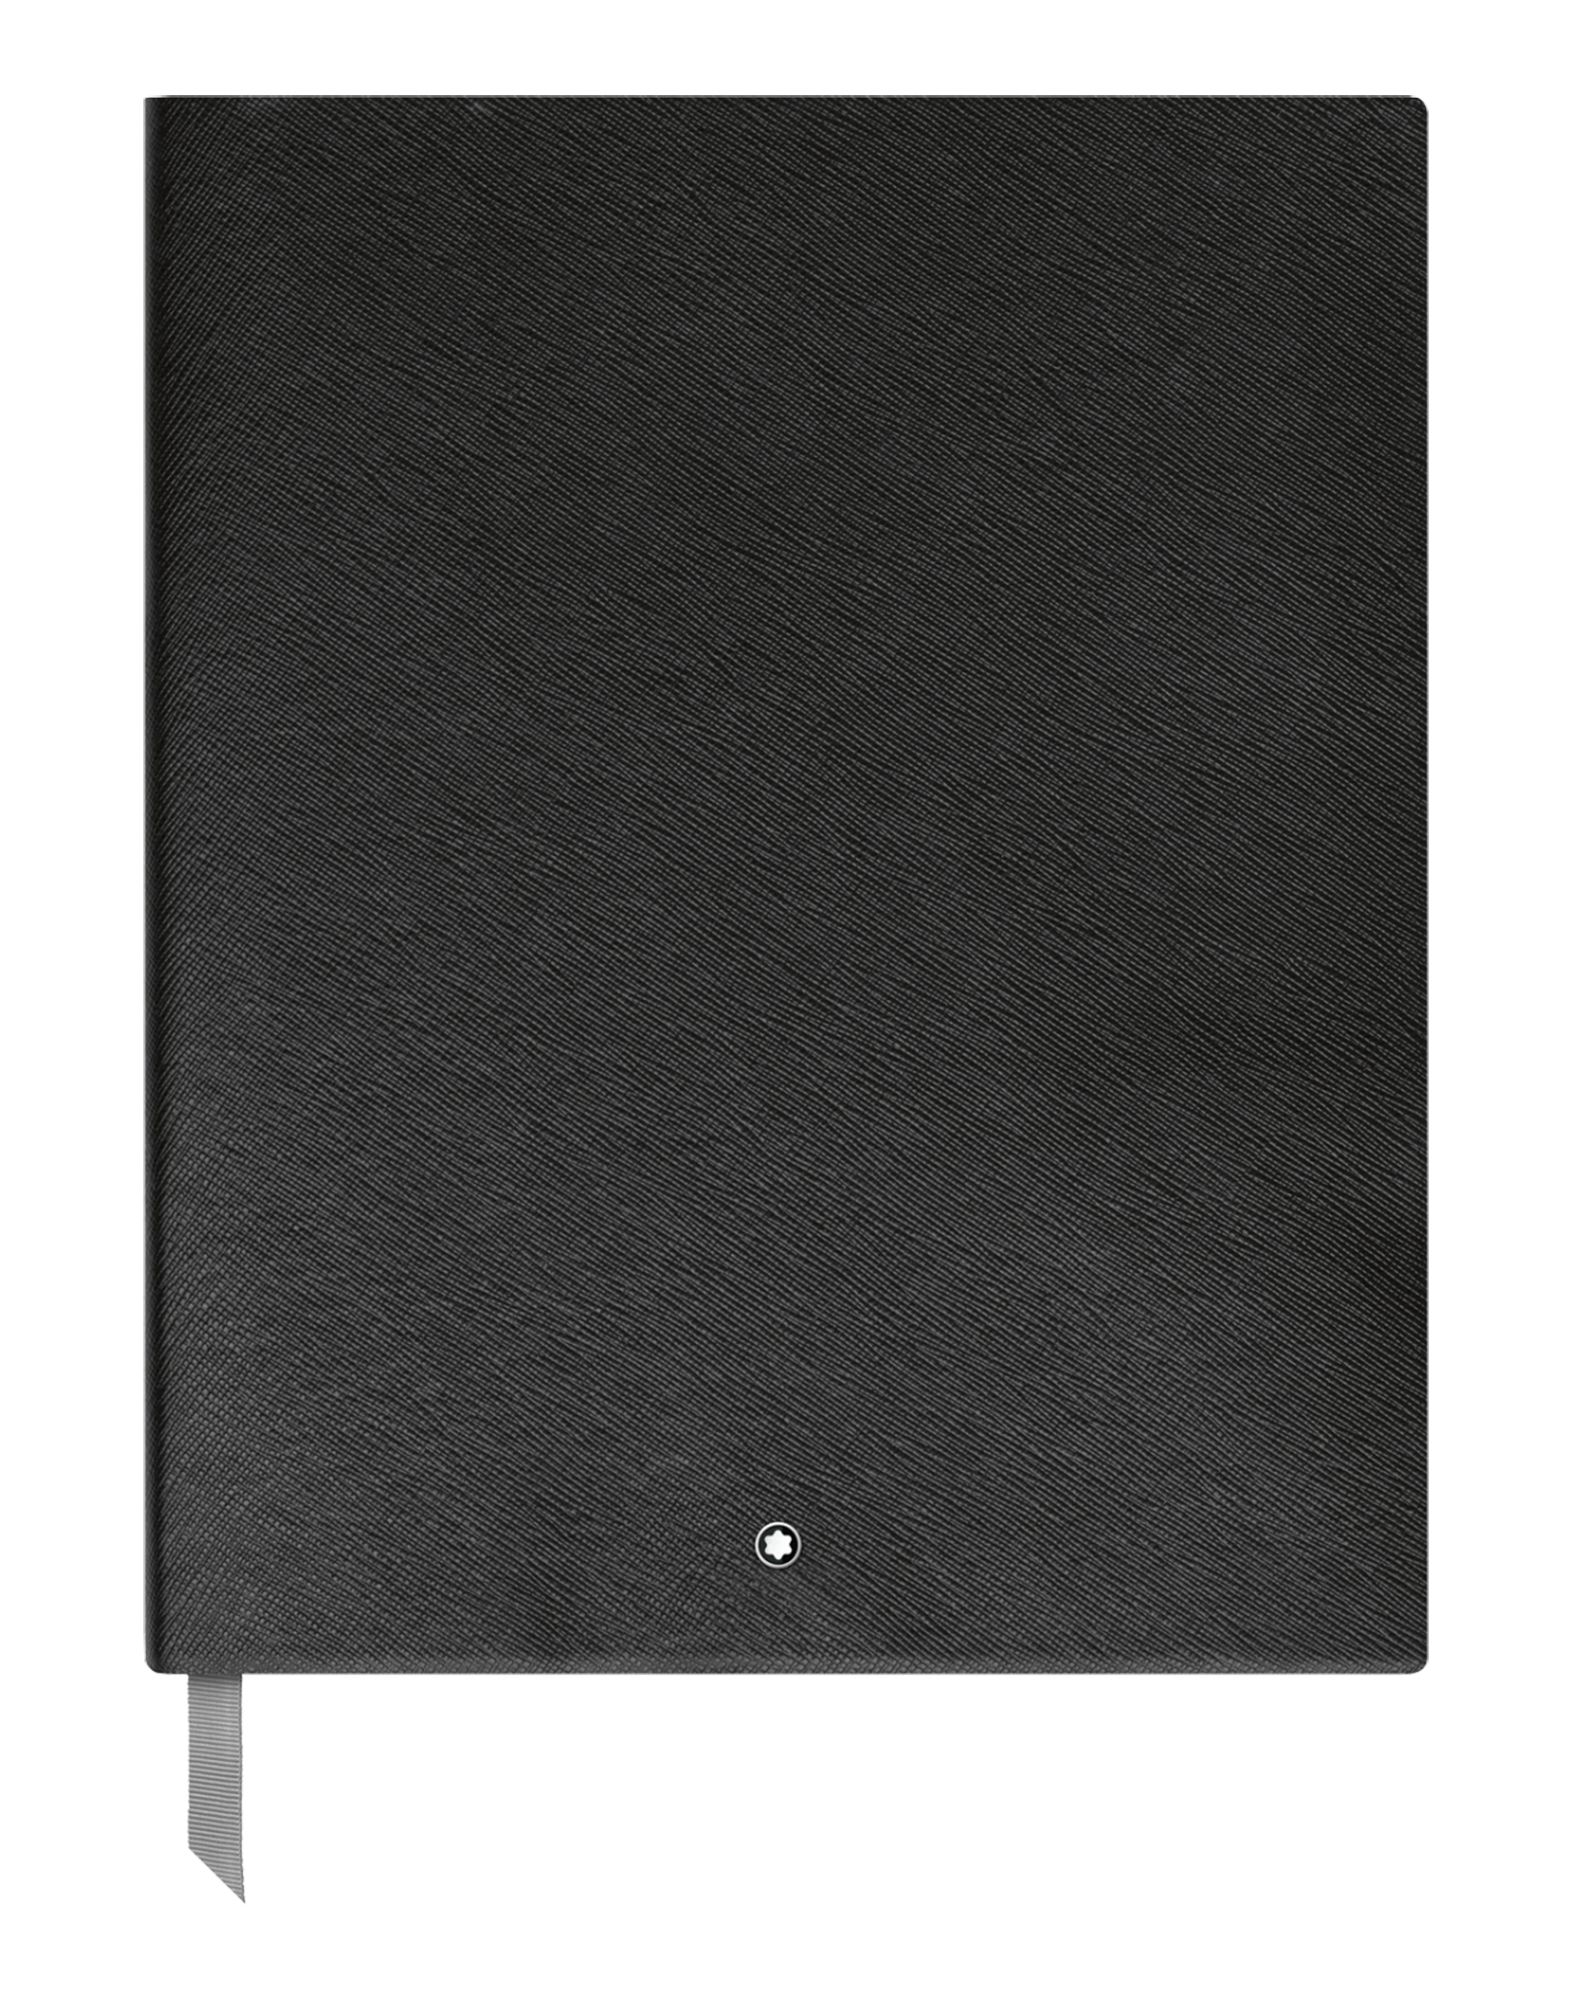 Agende & Taccuini Montblanc Fine Stationary Notebook #149 Black, Lined - Uomo - Acquista online su